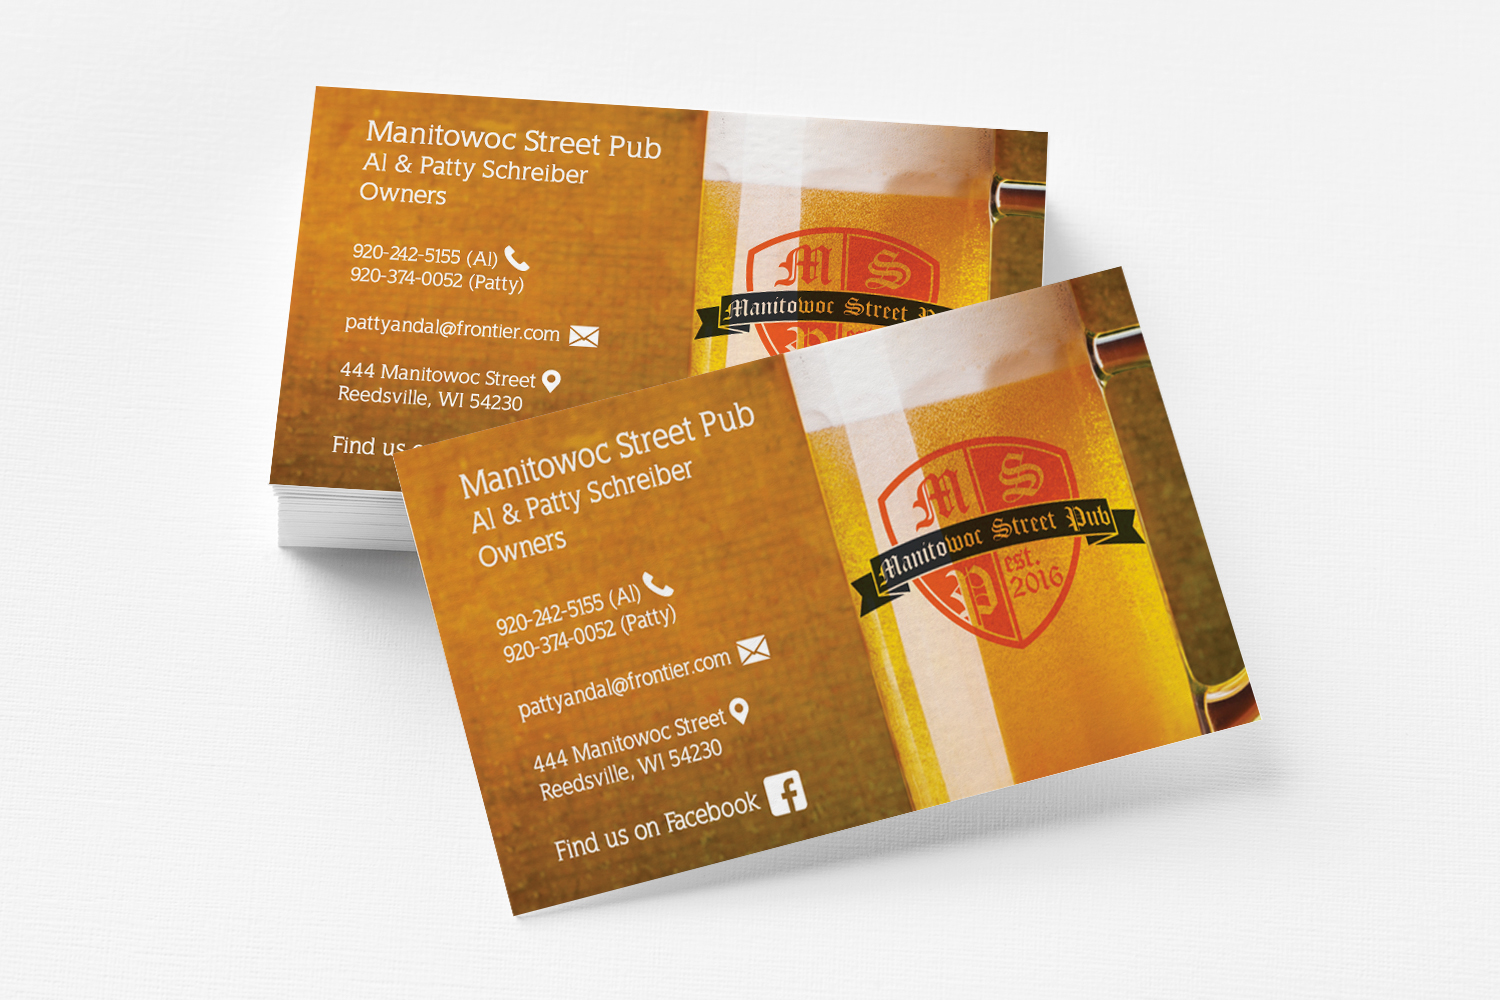 Manitowoc Street Pub Business Cards